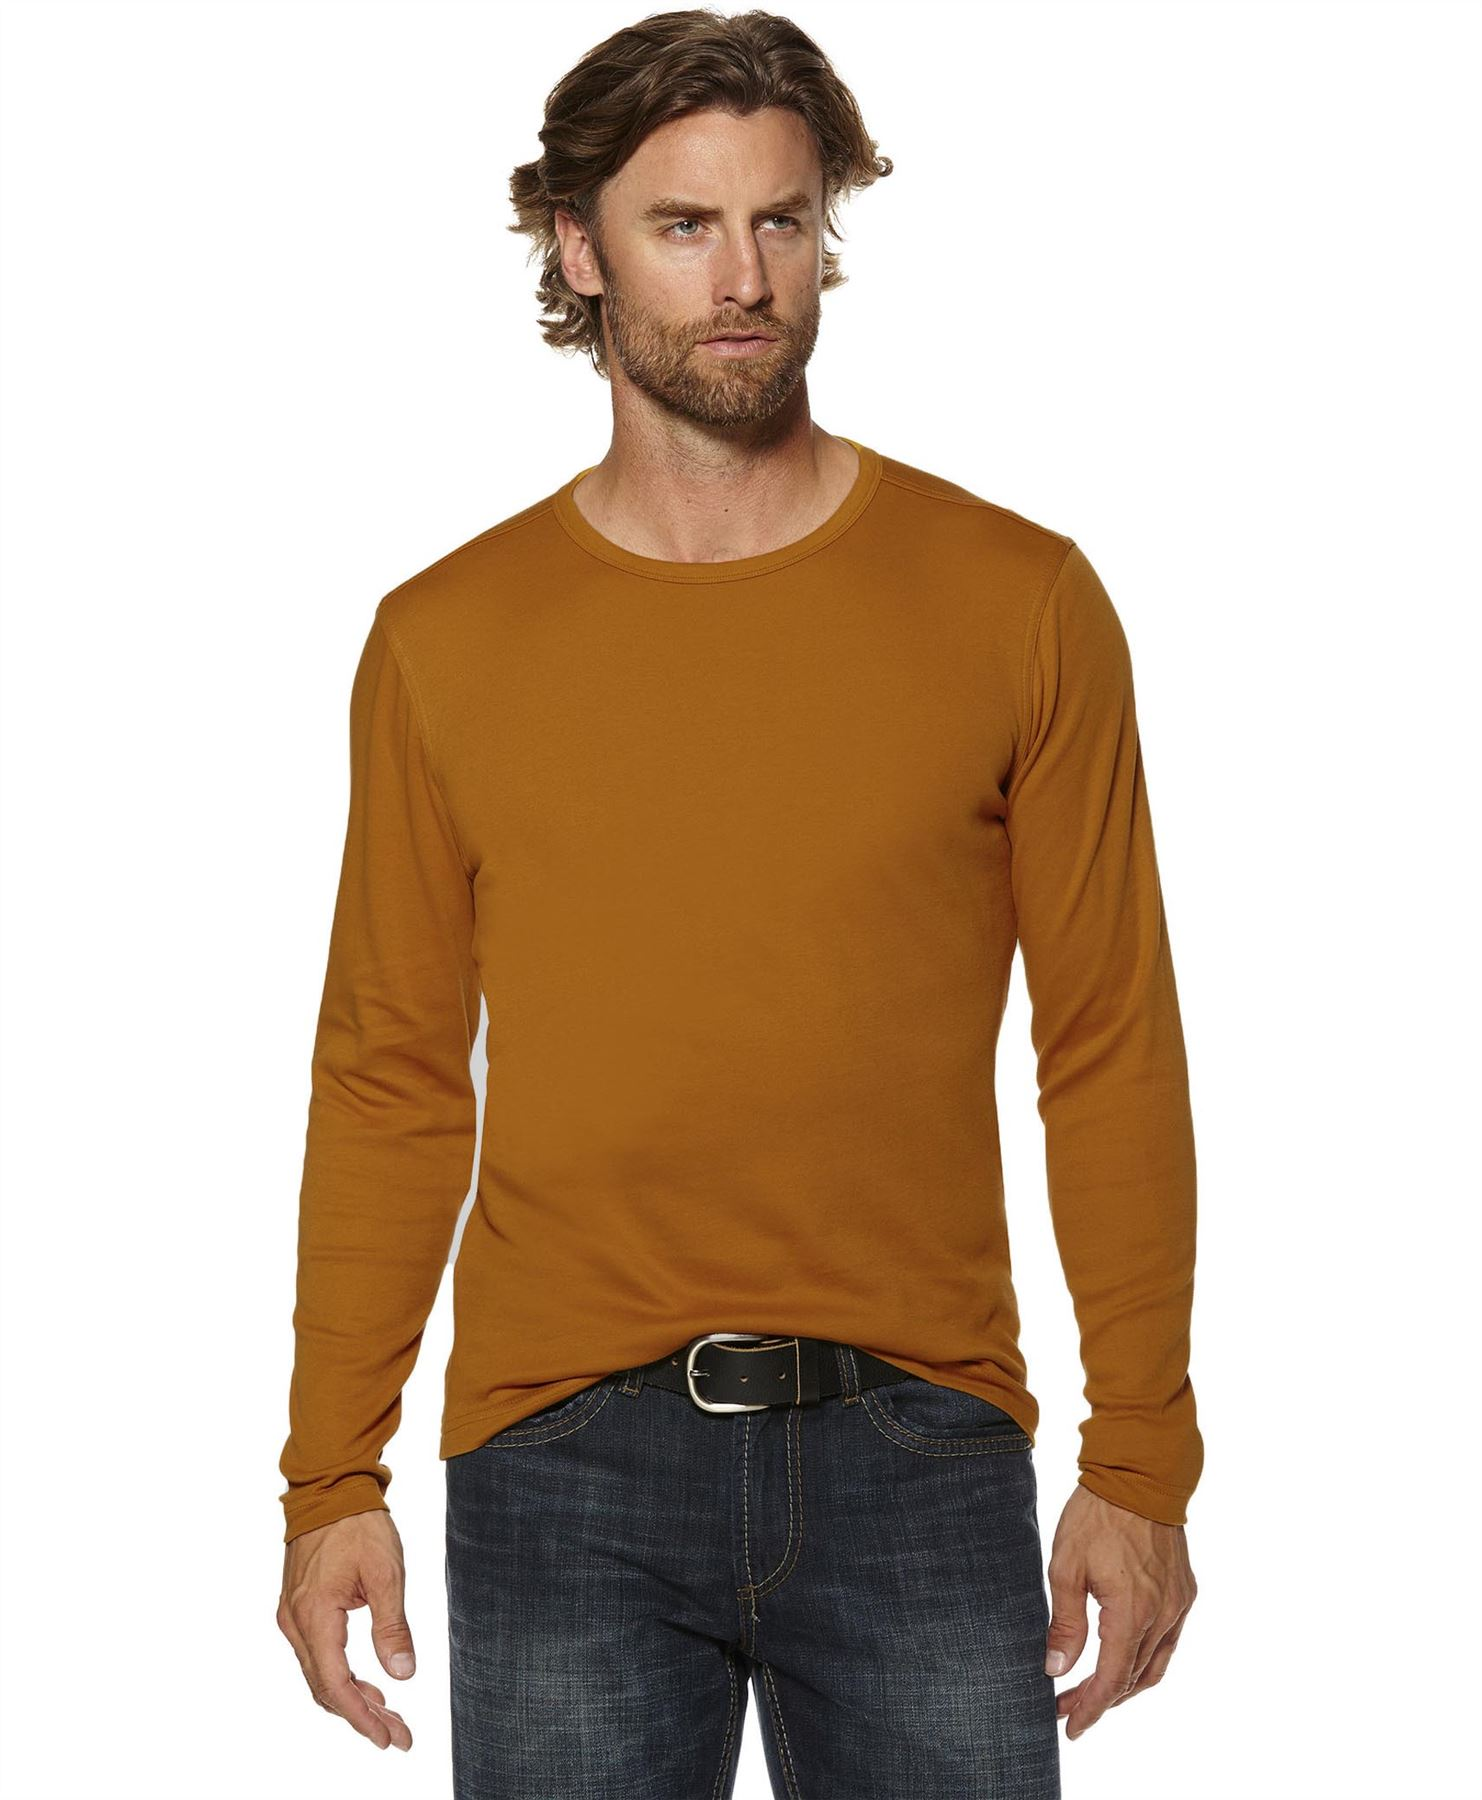 Mens Brown Long Sleeve T Shirt Artee Shirt